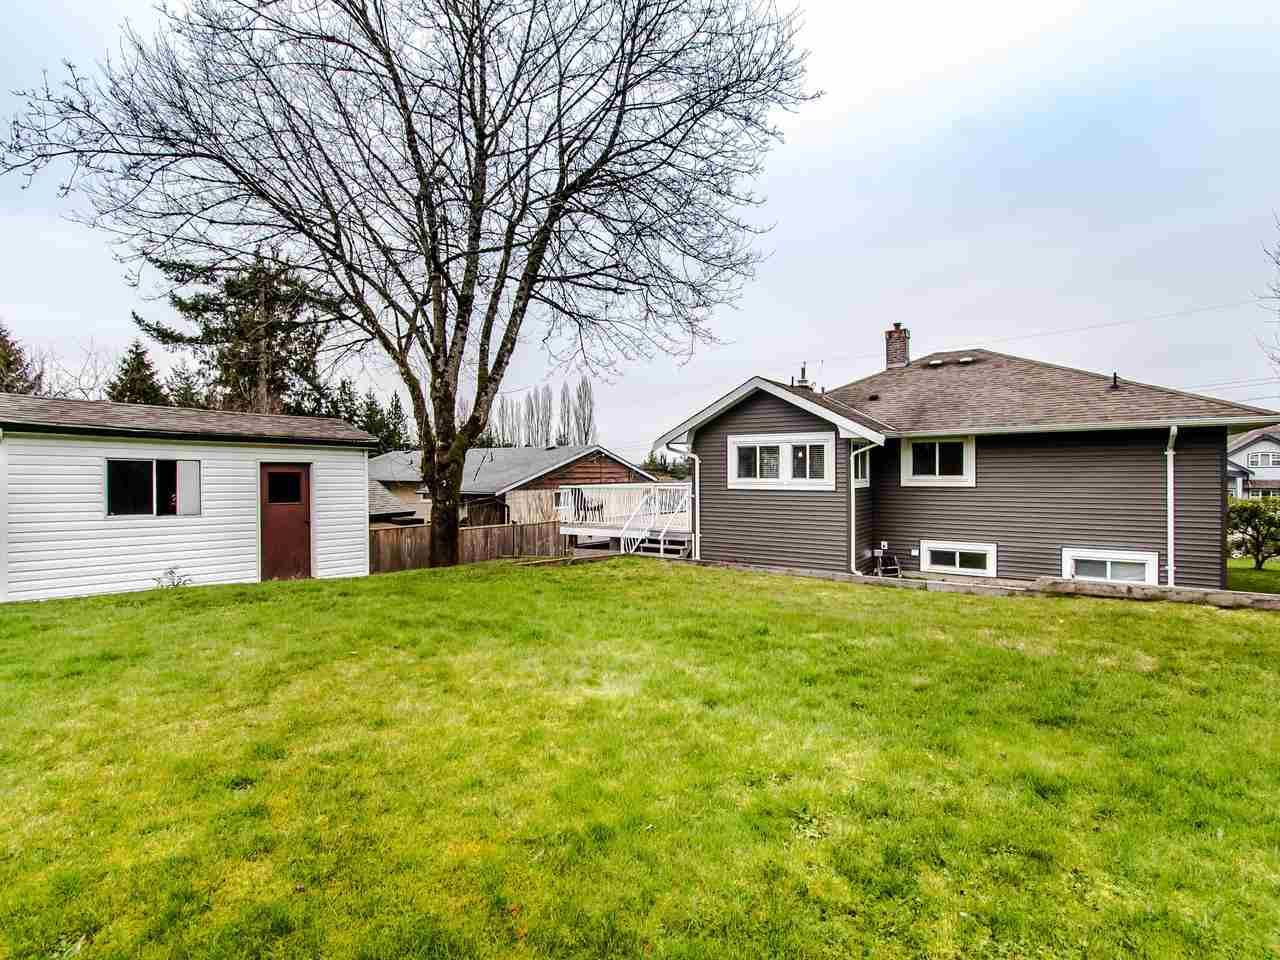 """Photo 18: Photos: 21744 48A Avenue in Langley: Murrayville House for sale in """"MURRAYVILLE"""" : MLS®# R2451789"""